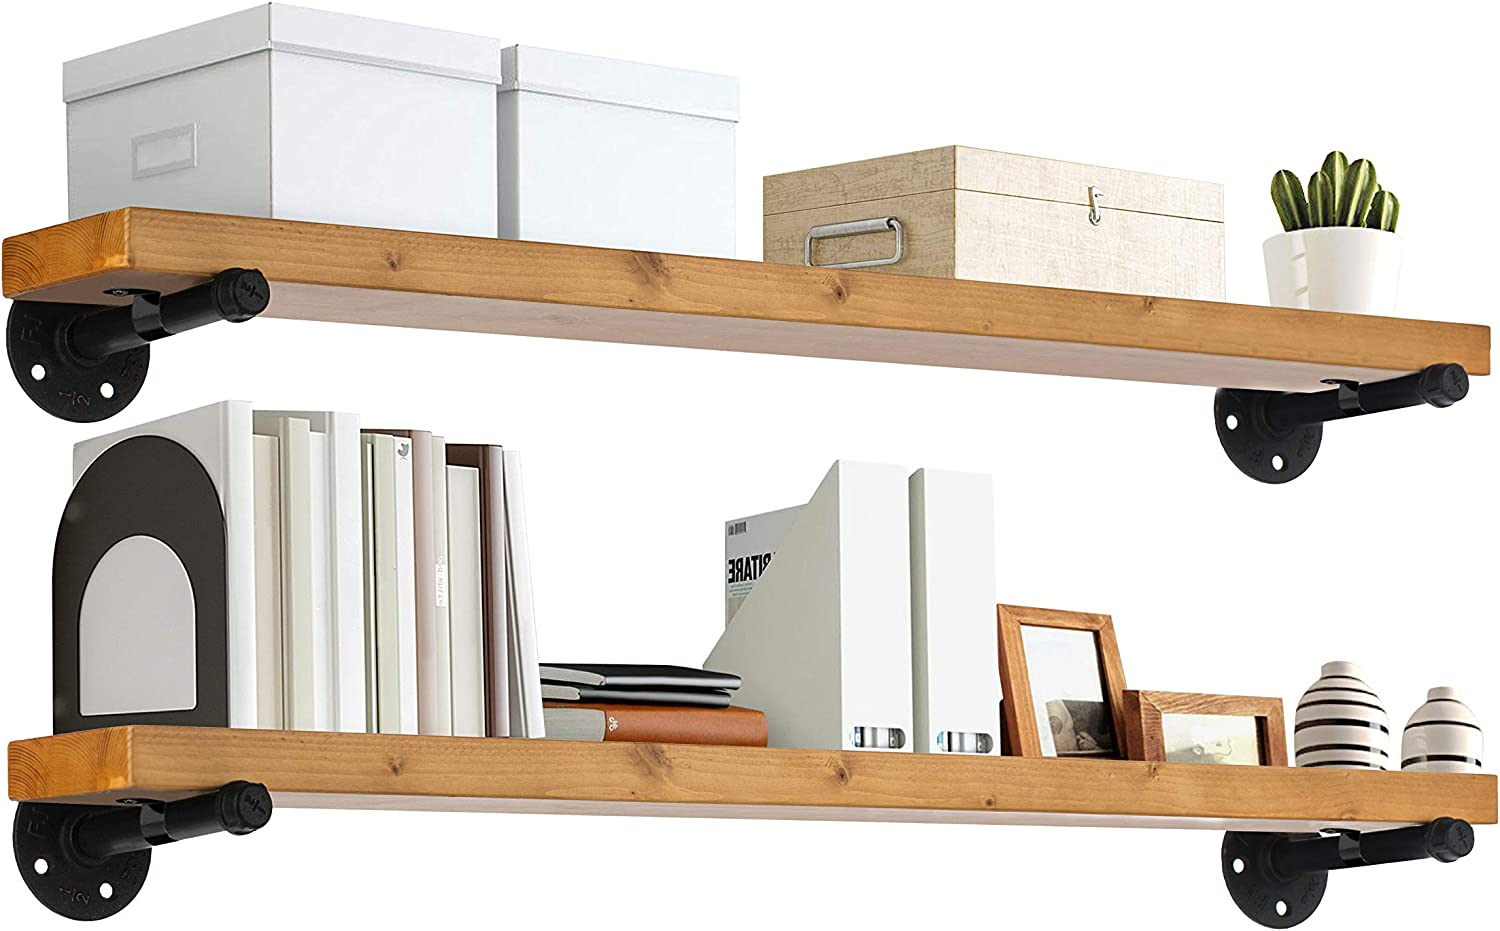 """TEN49 Industrial Wood Shelf - 36"""" Special Walnut Rustic Wooden Wall Shelves with Iron Pipes - Contemporary Interior Decor Floating Shelving with Pipe Brackets - Farmhouse Style Bookshelf Set of 2"""